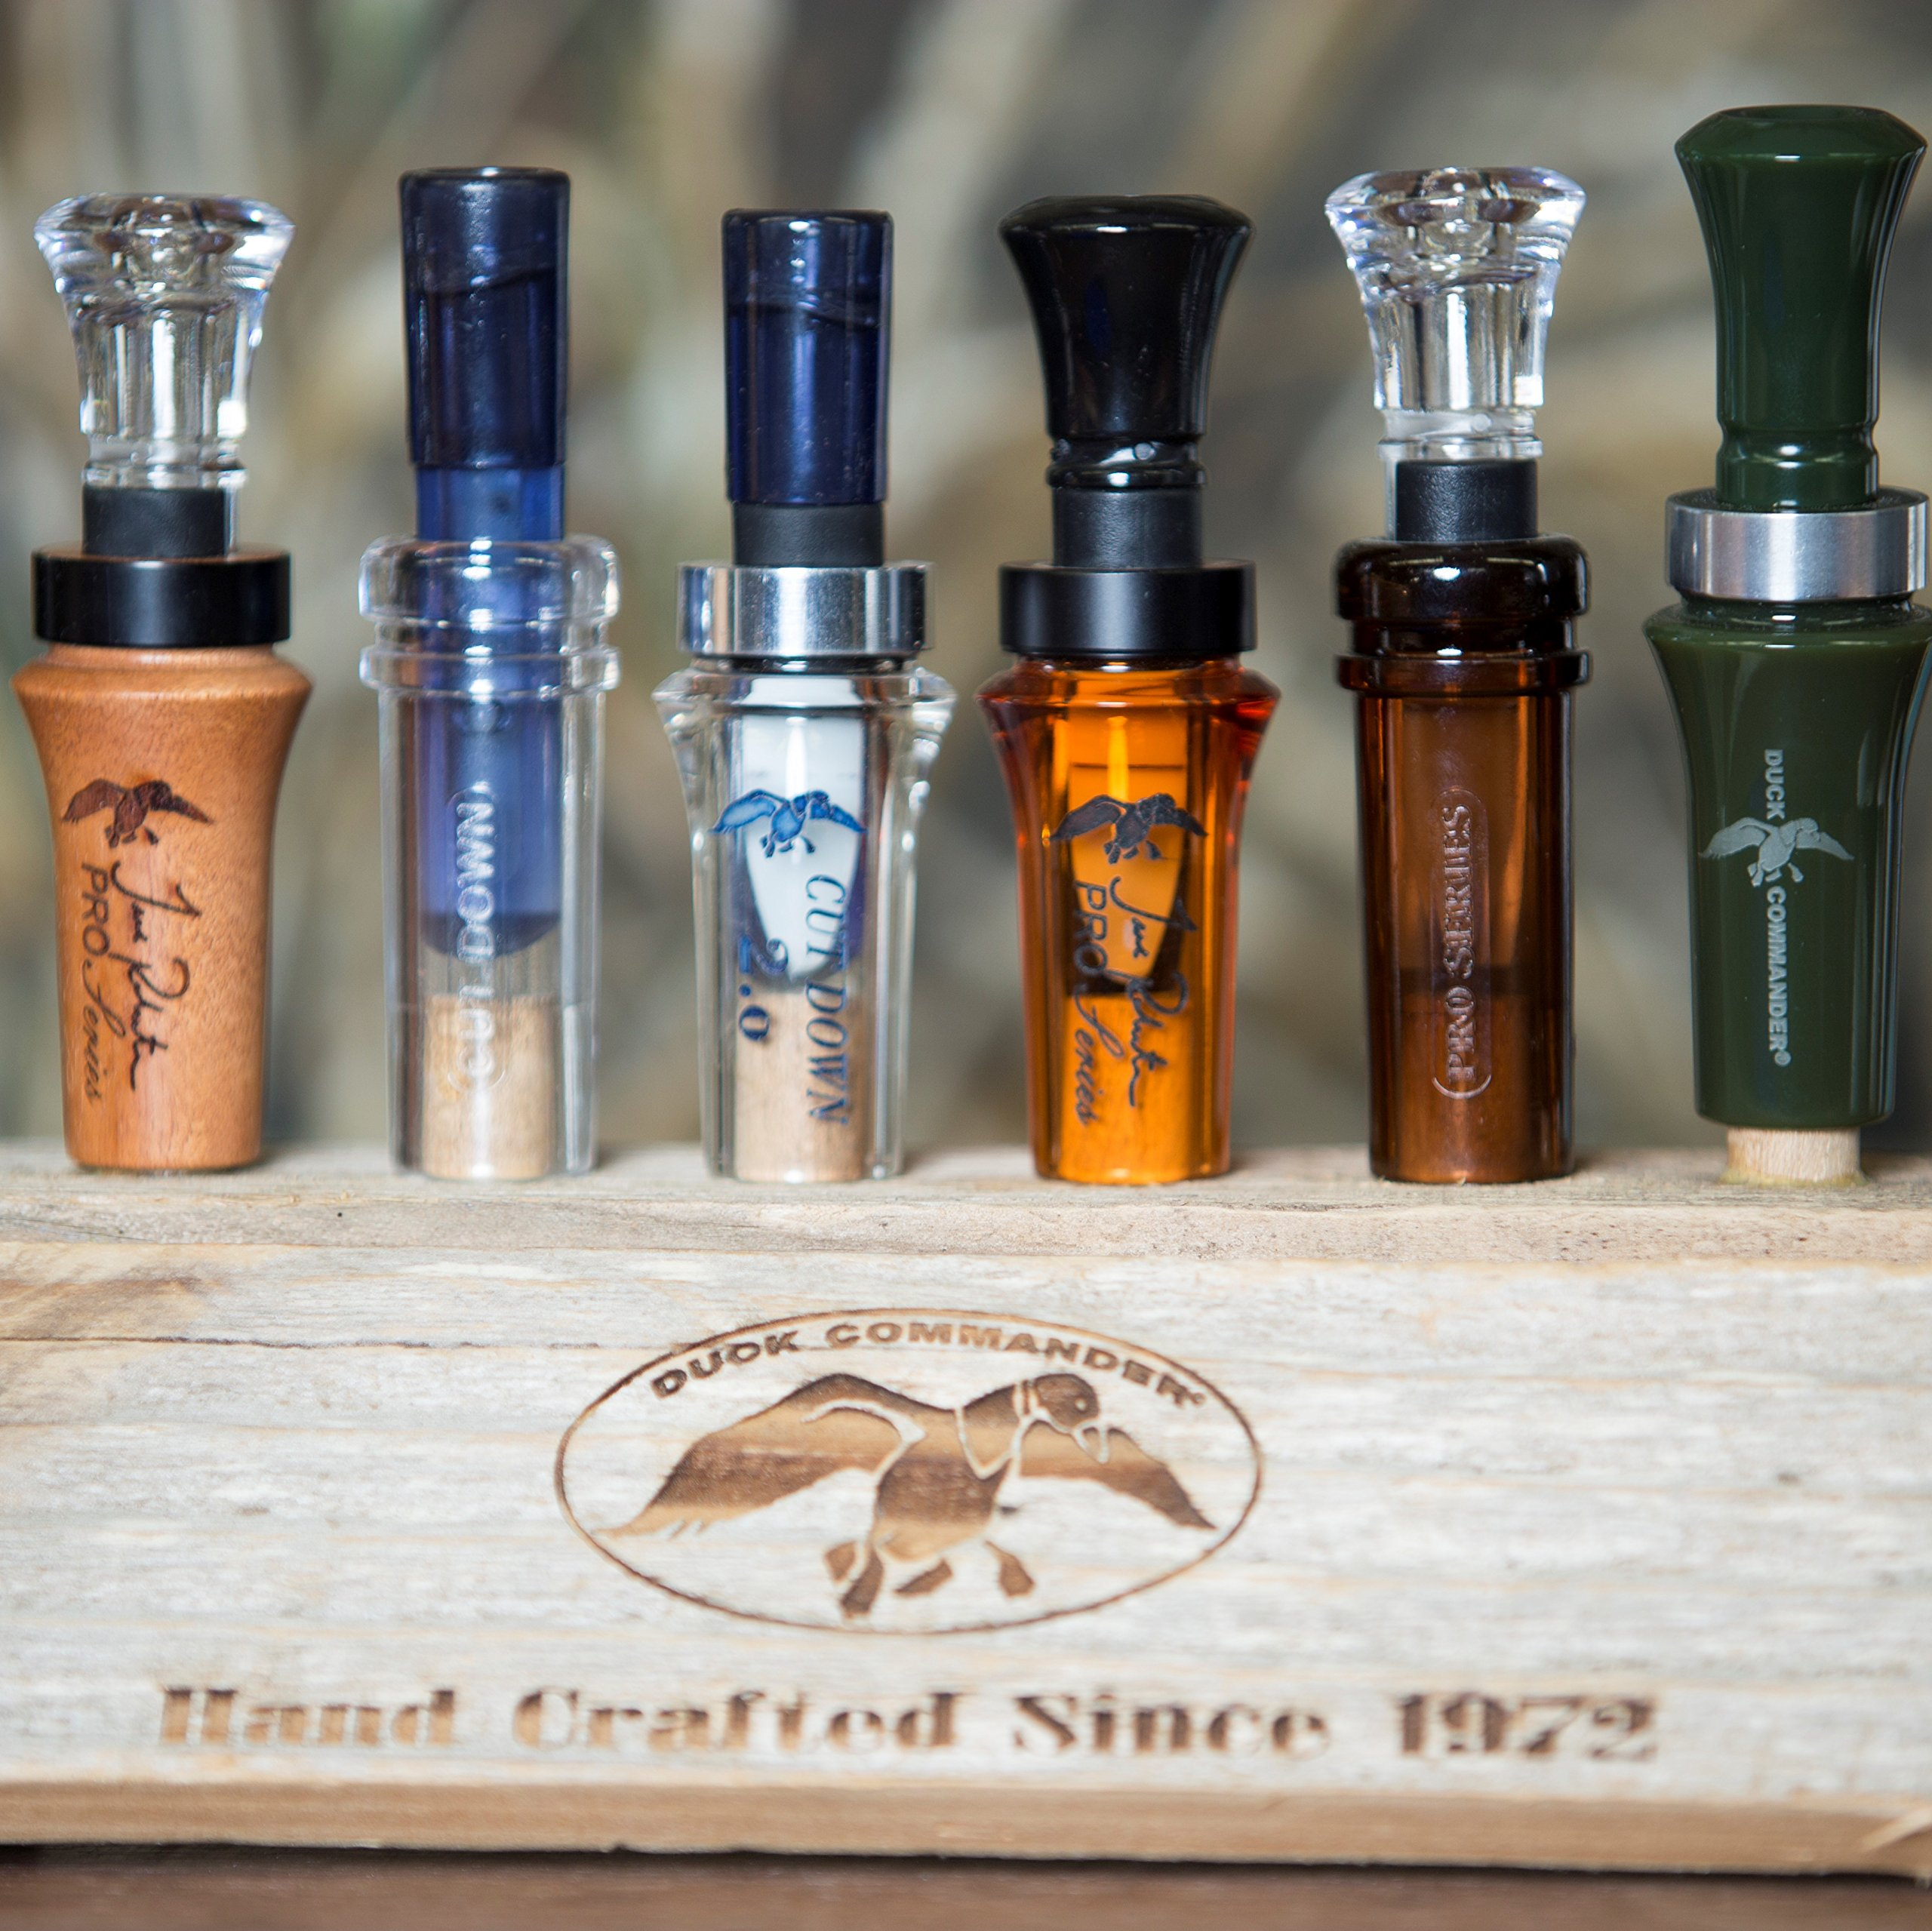 DUCK COMMANDER Jase Robertson Pro Series Duck Call, Tigerwood by DUCK COMMANDER (Image #2)